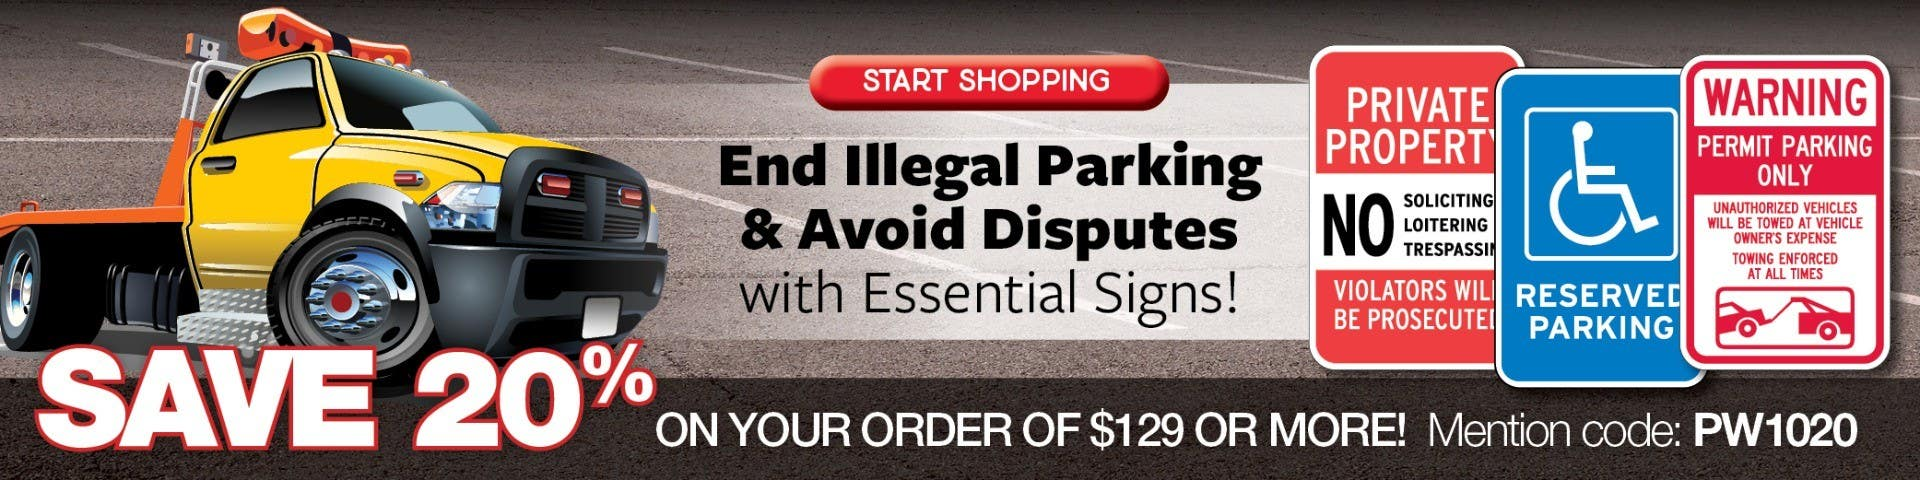 End Illegal Parking & Avoid Disputes with Essential Signs